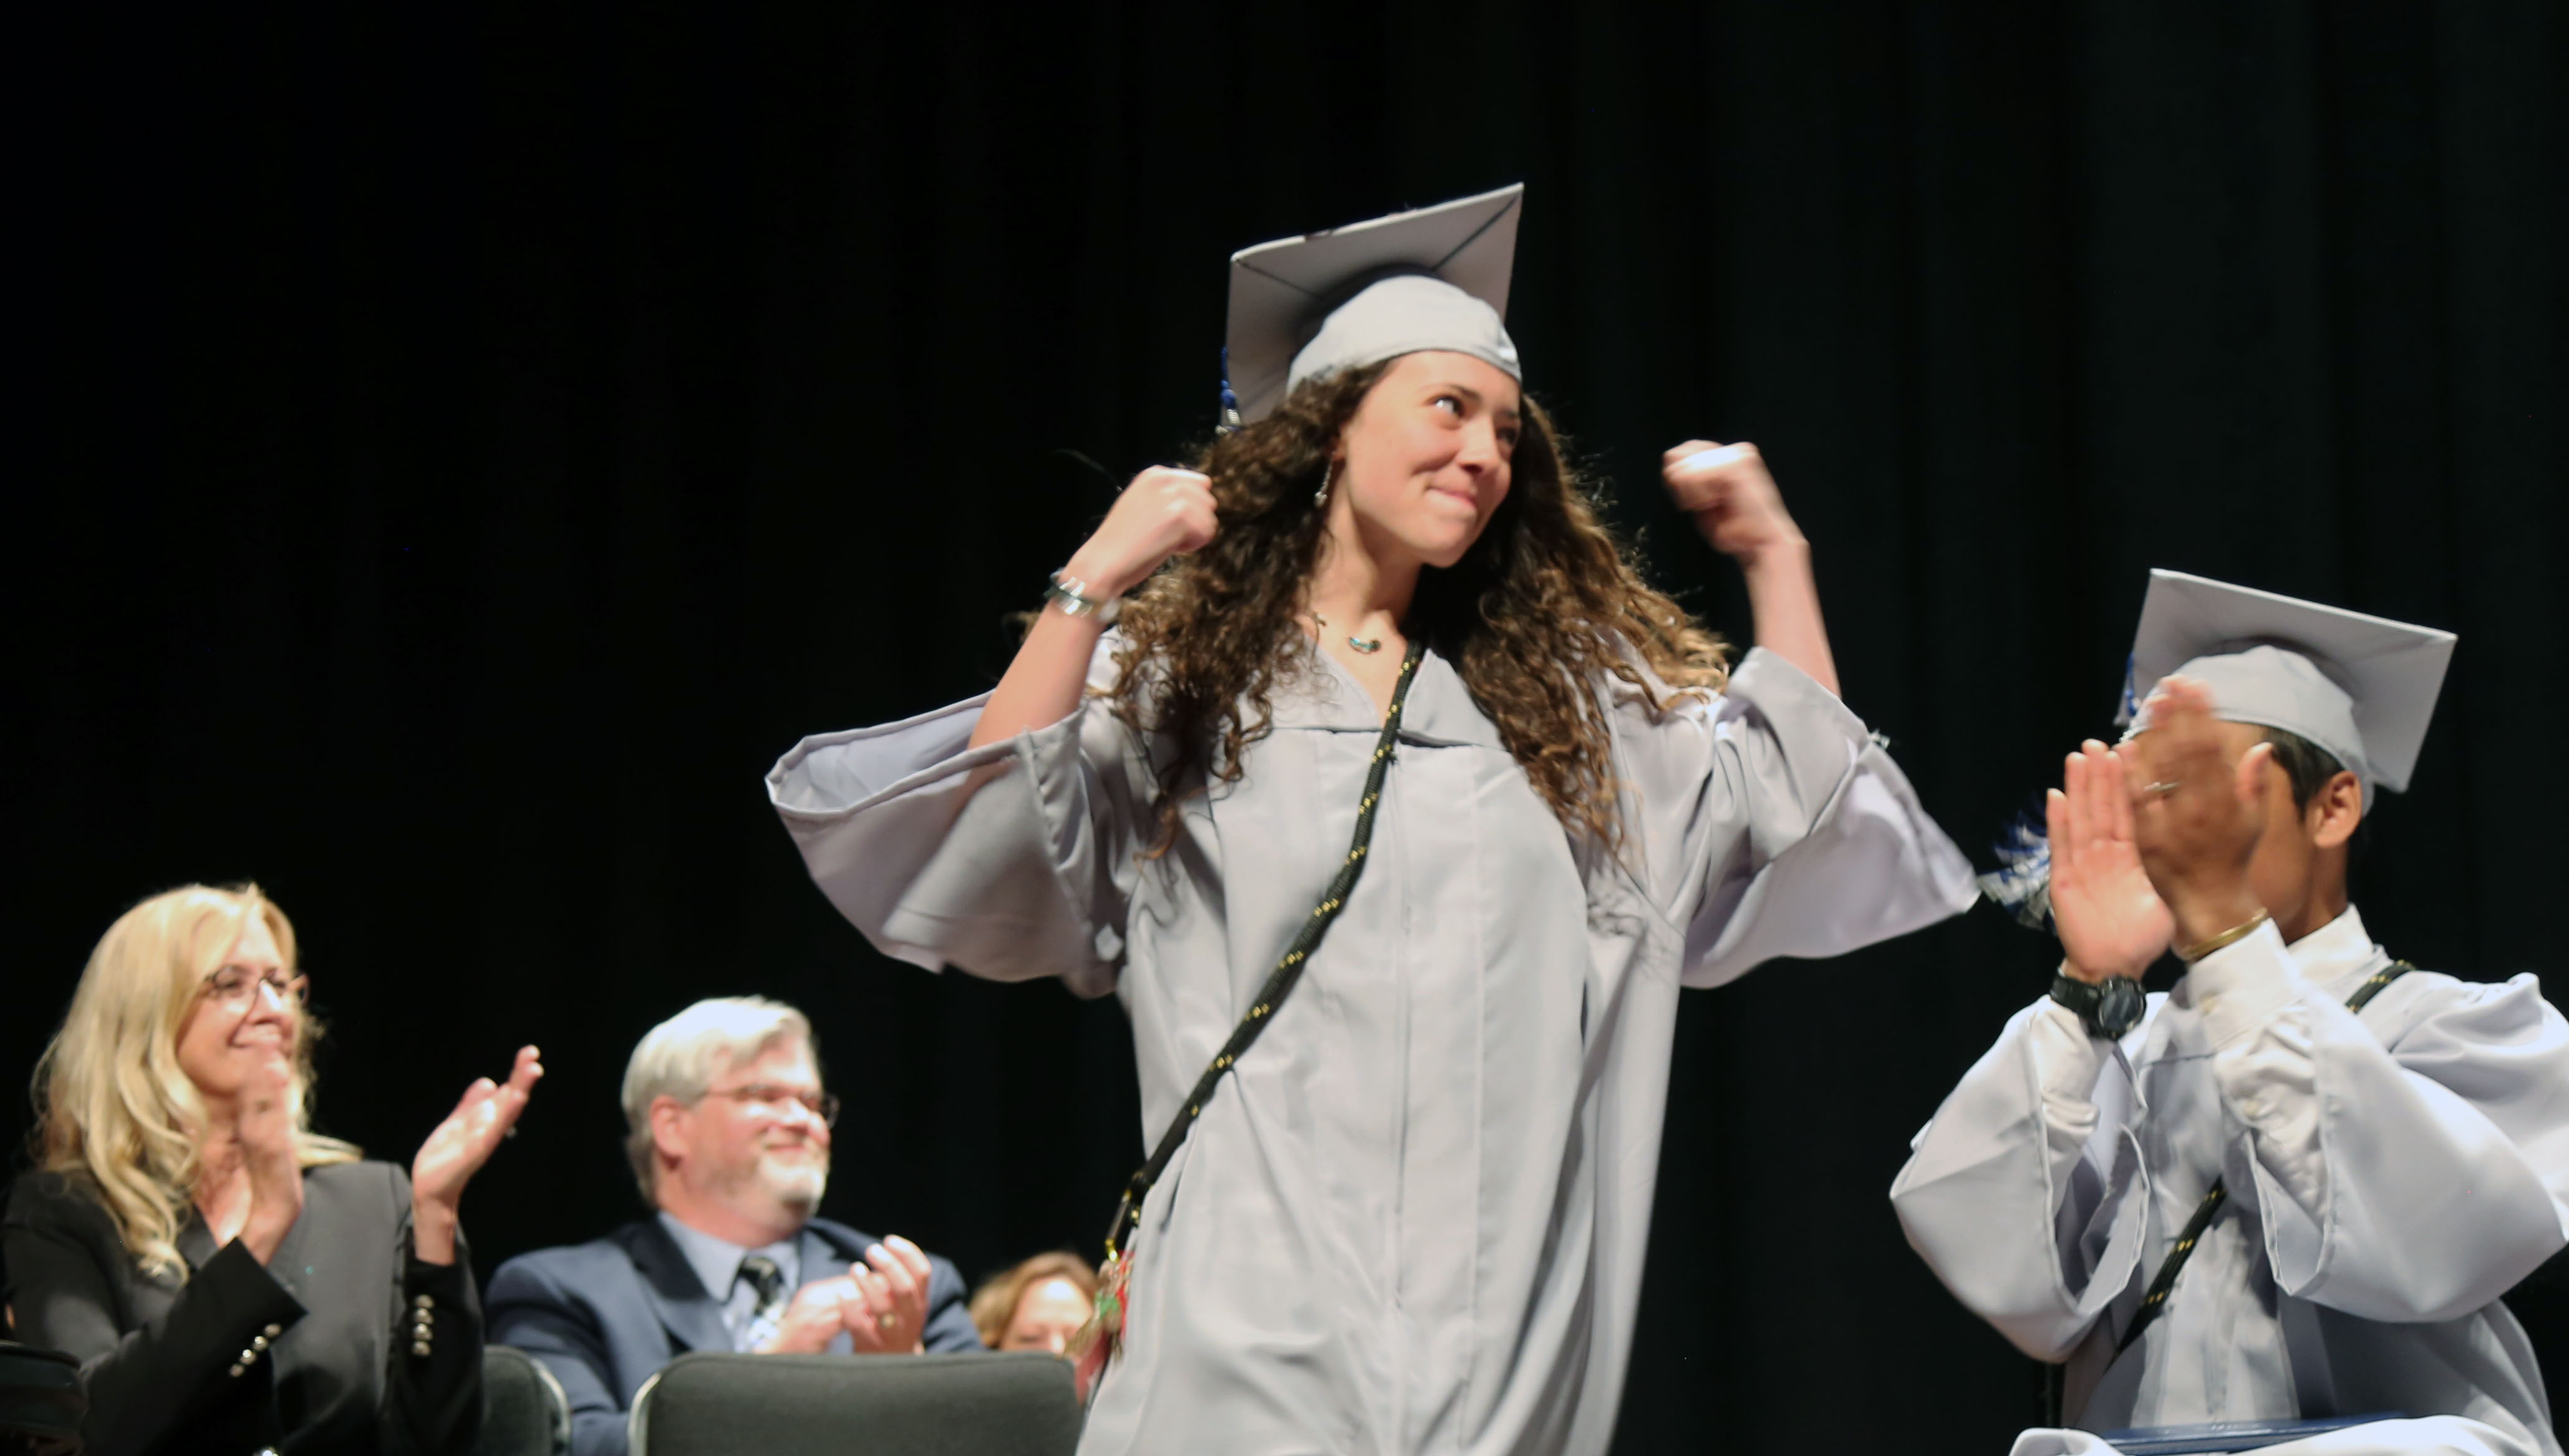 A Polaris grad cheers for her accomplishment.